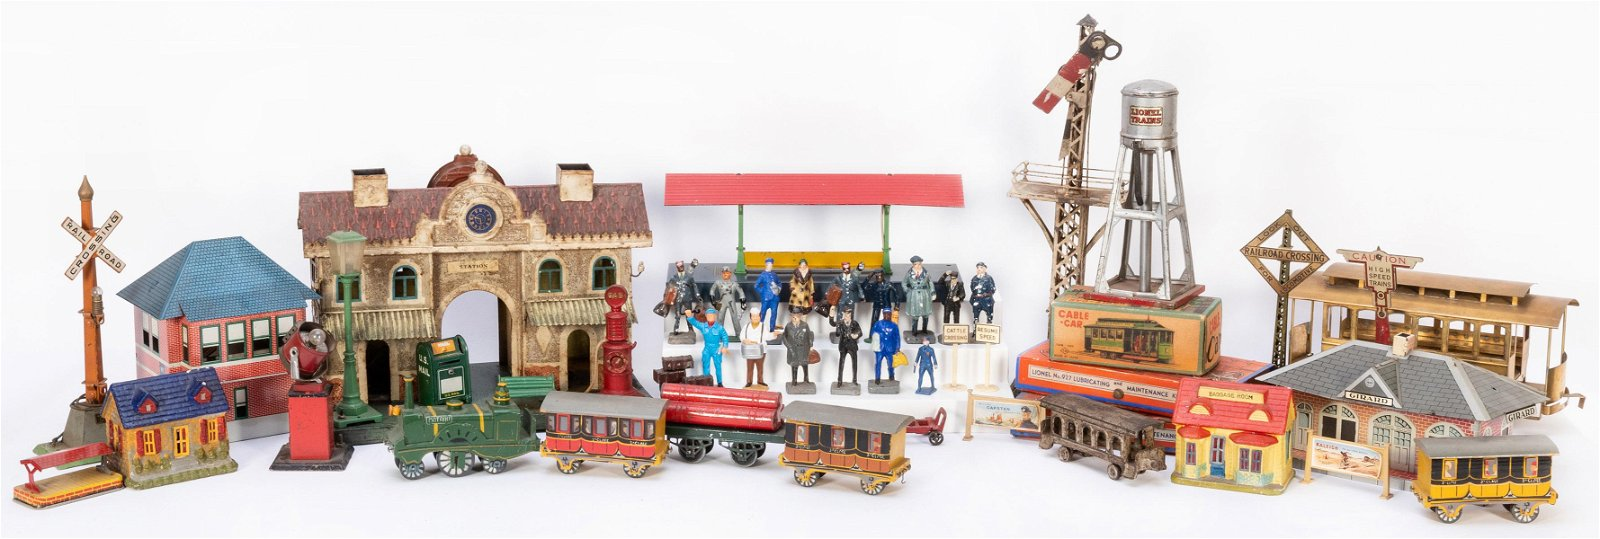 Large Group of Vintage Toy Train Cars and Accessories.